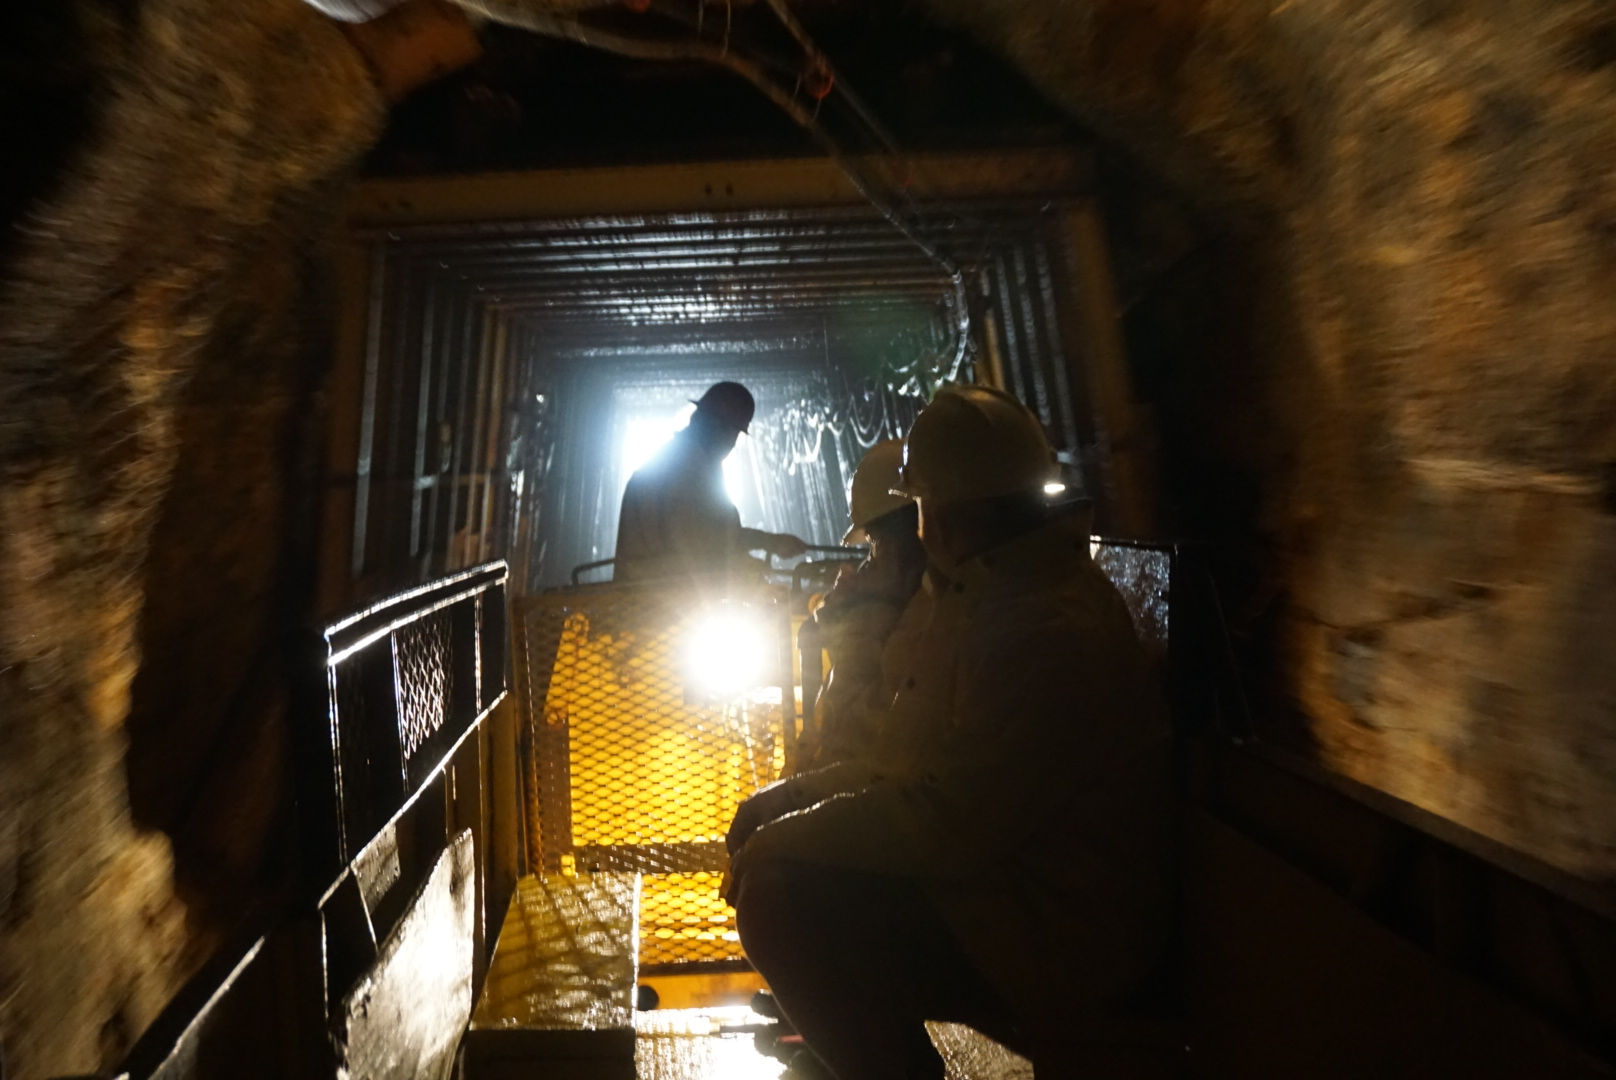 Riding the tram into the mine